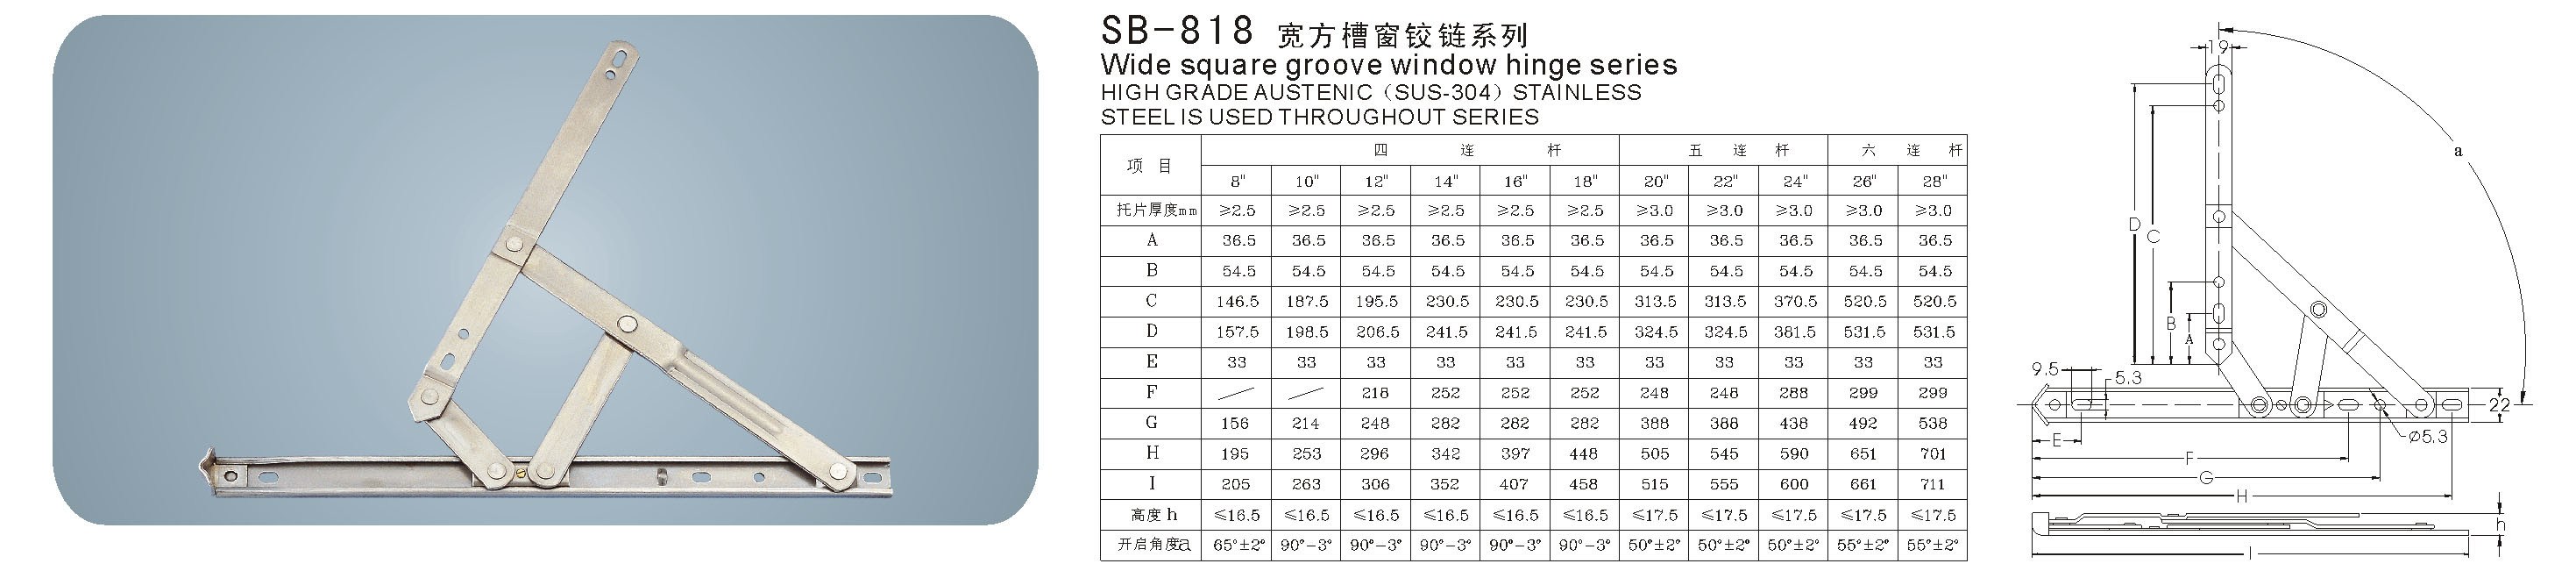 Flexible Modern Window Fastener/Stay/Hinge (SB-818)